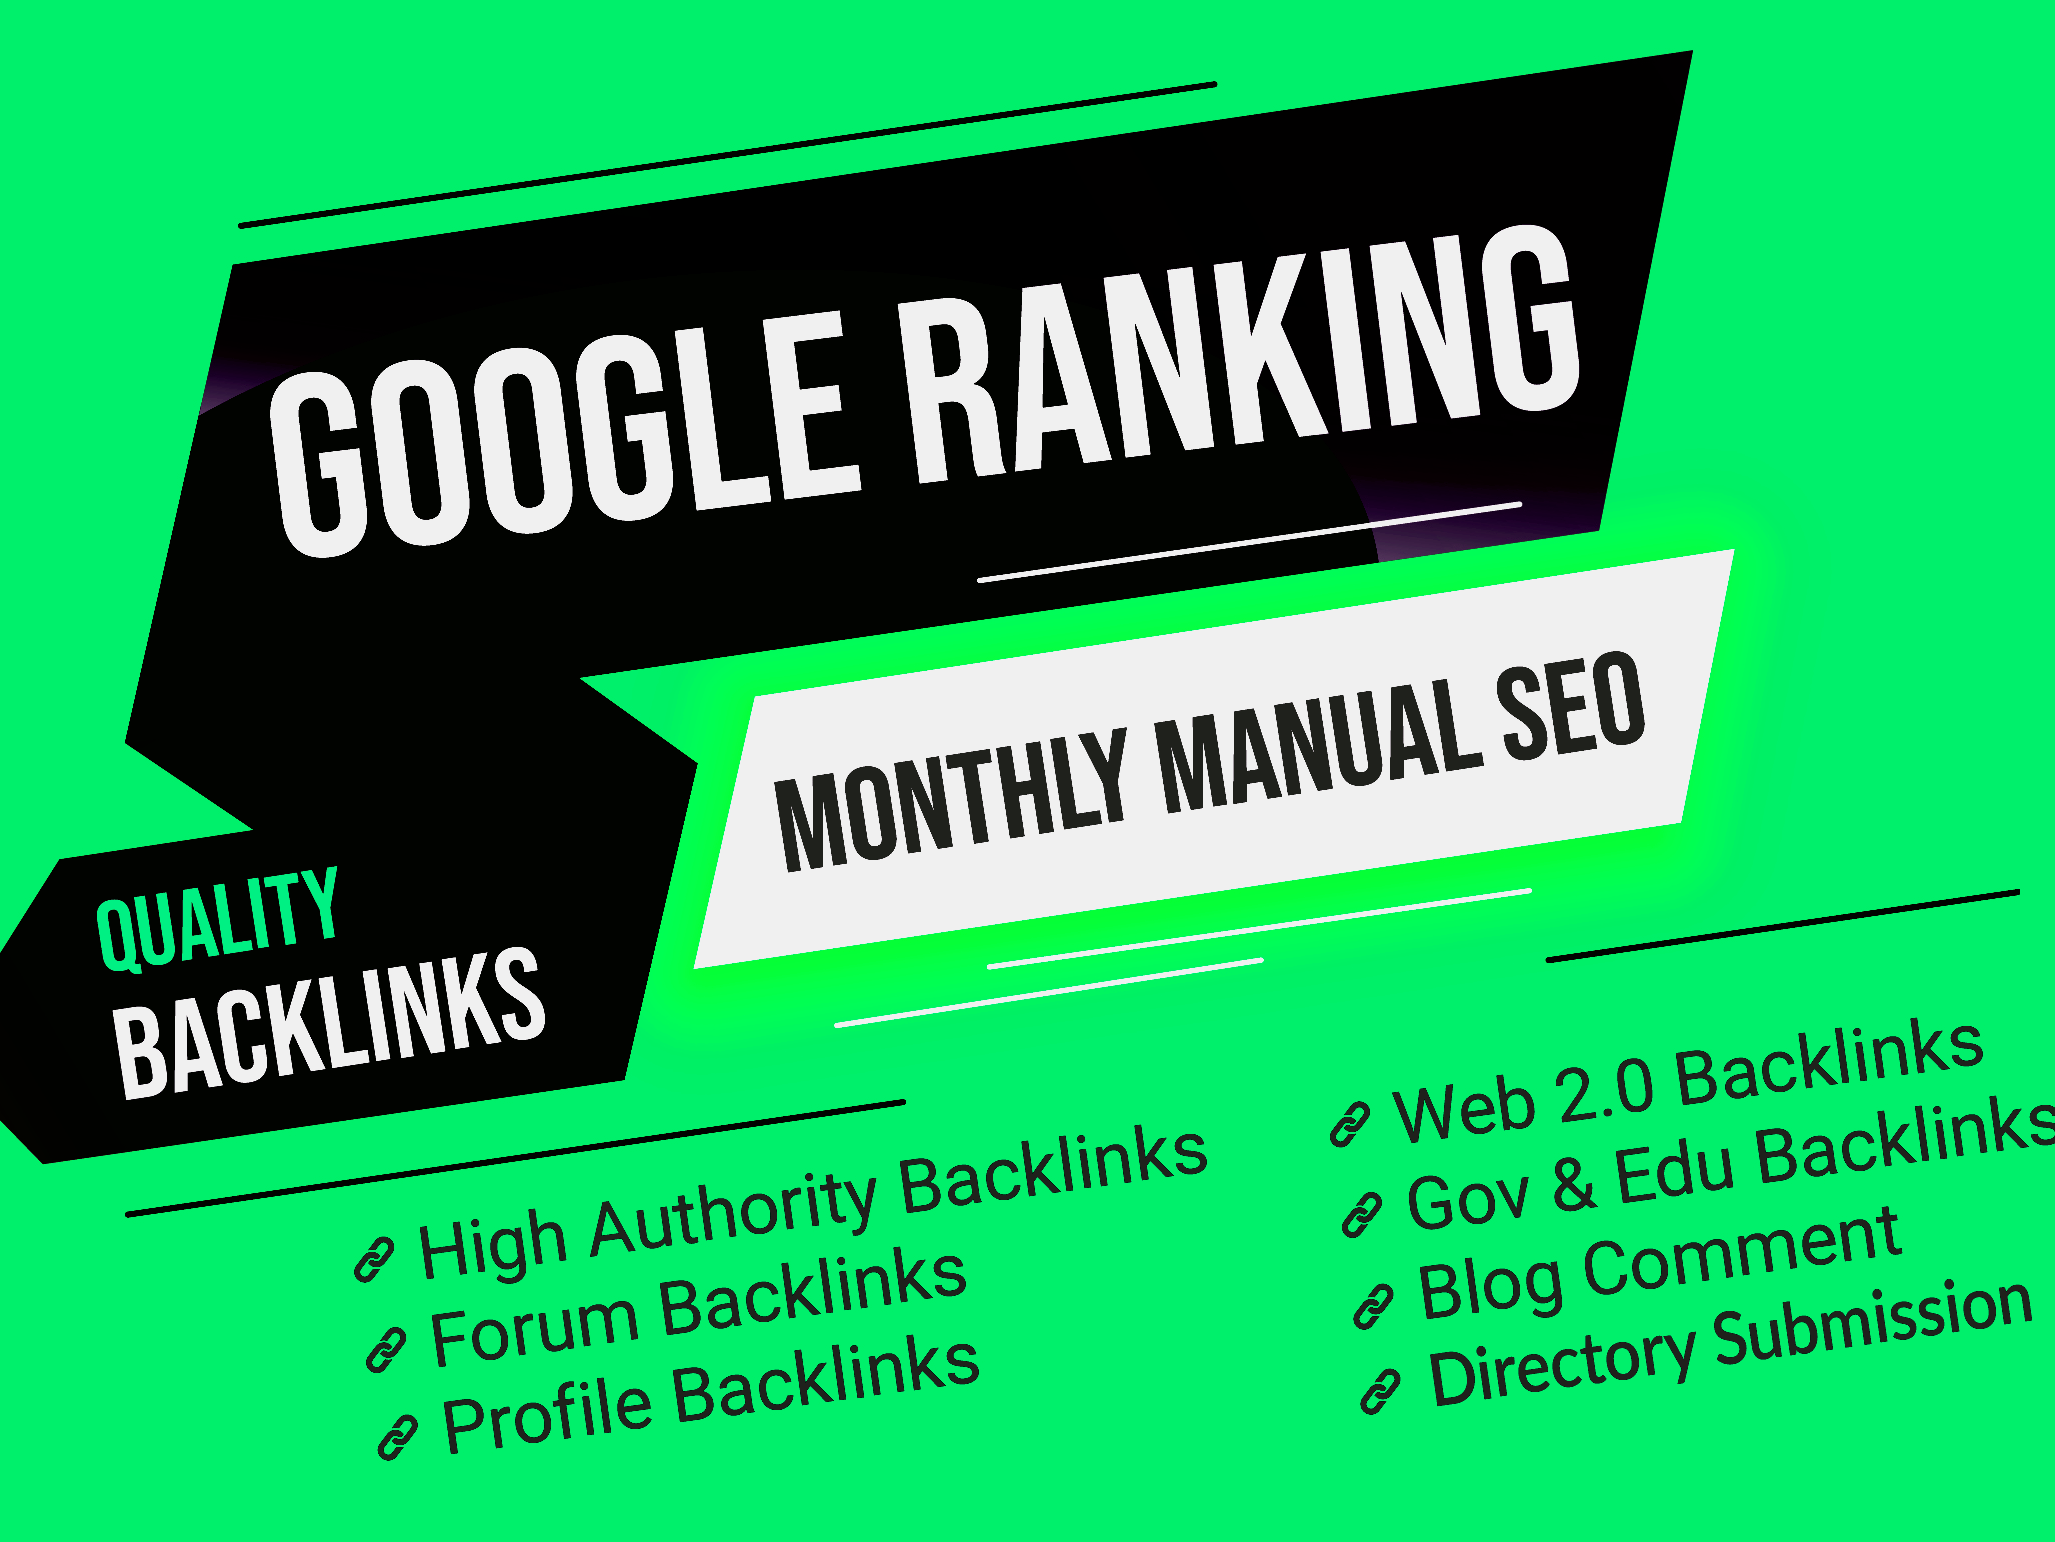 Perfect Monthly SEO service to rank your website on top of google